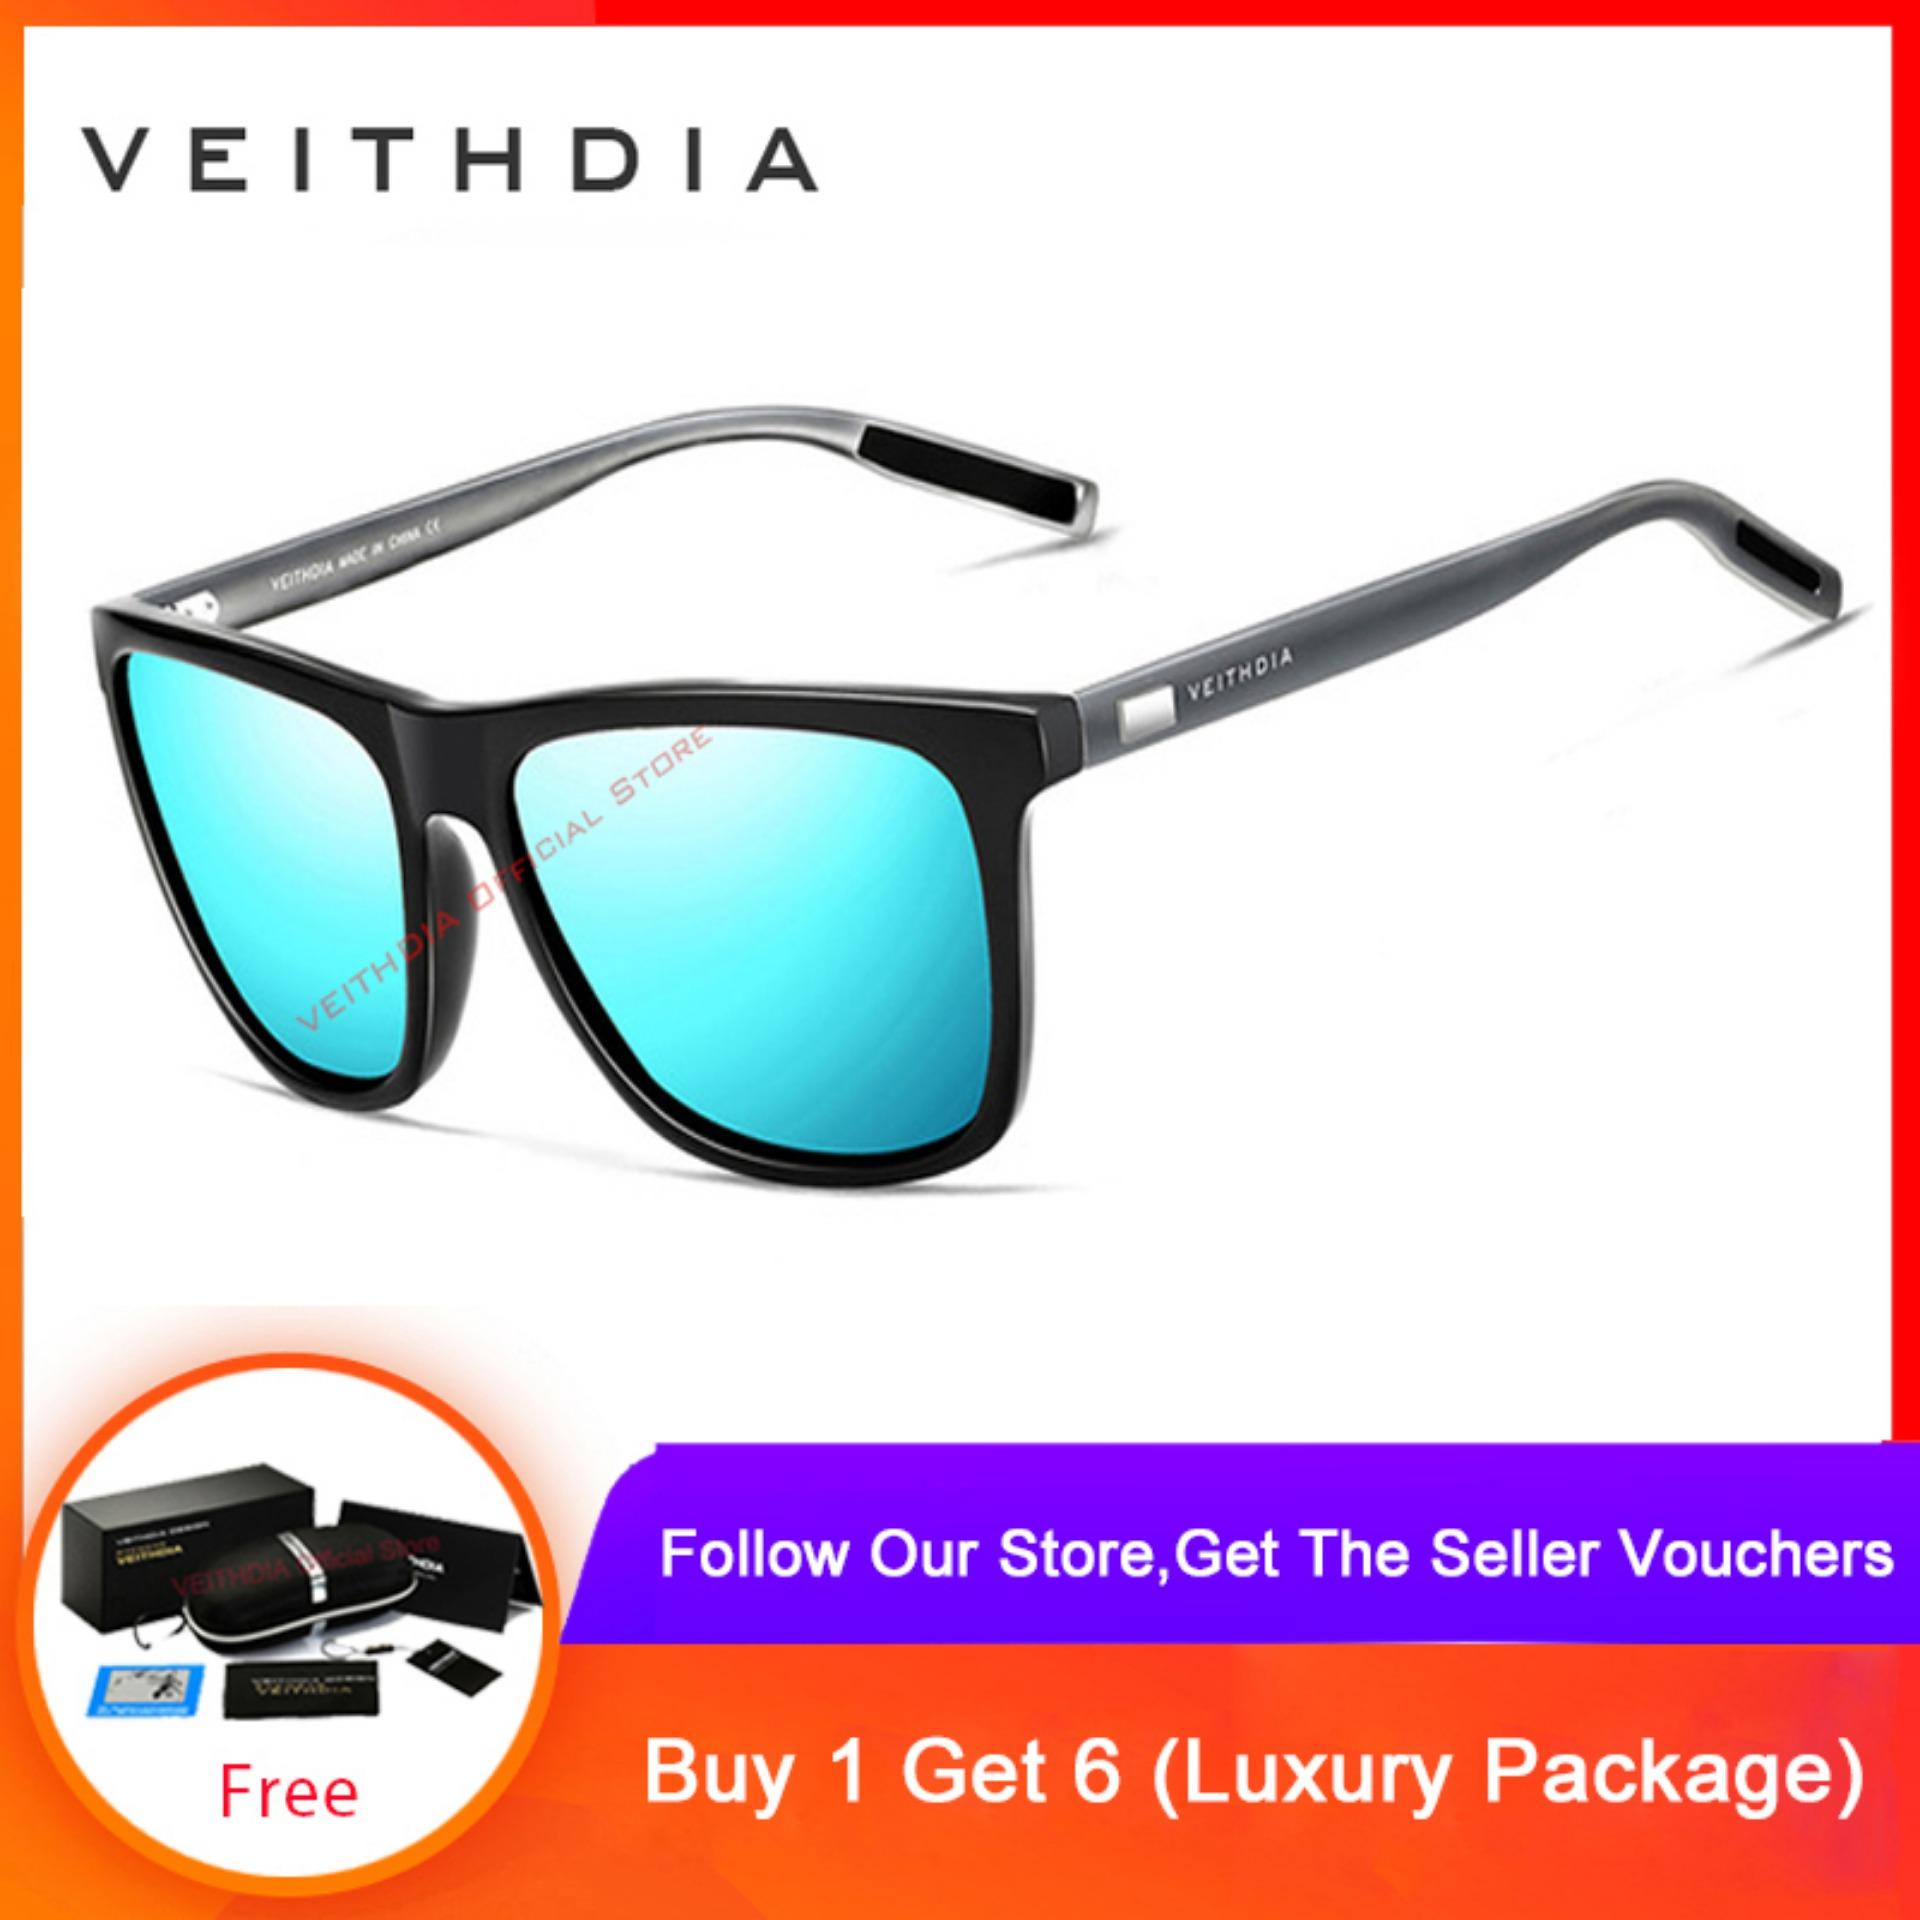 abdf22c57 VEITHDIA Unisex Aluminum+TR90 Sunglasses Polarized Lens Vintage Eyewear  Accessories Sun Glasses For Men/